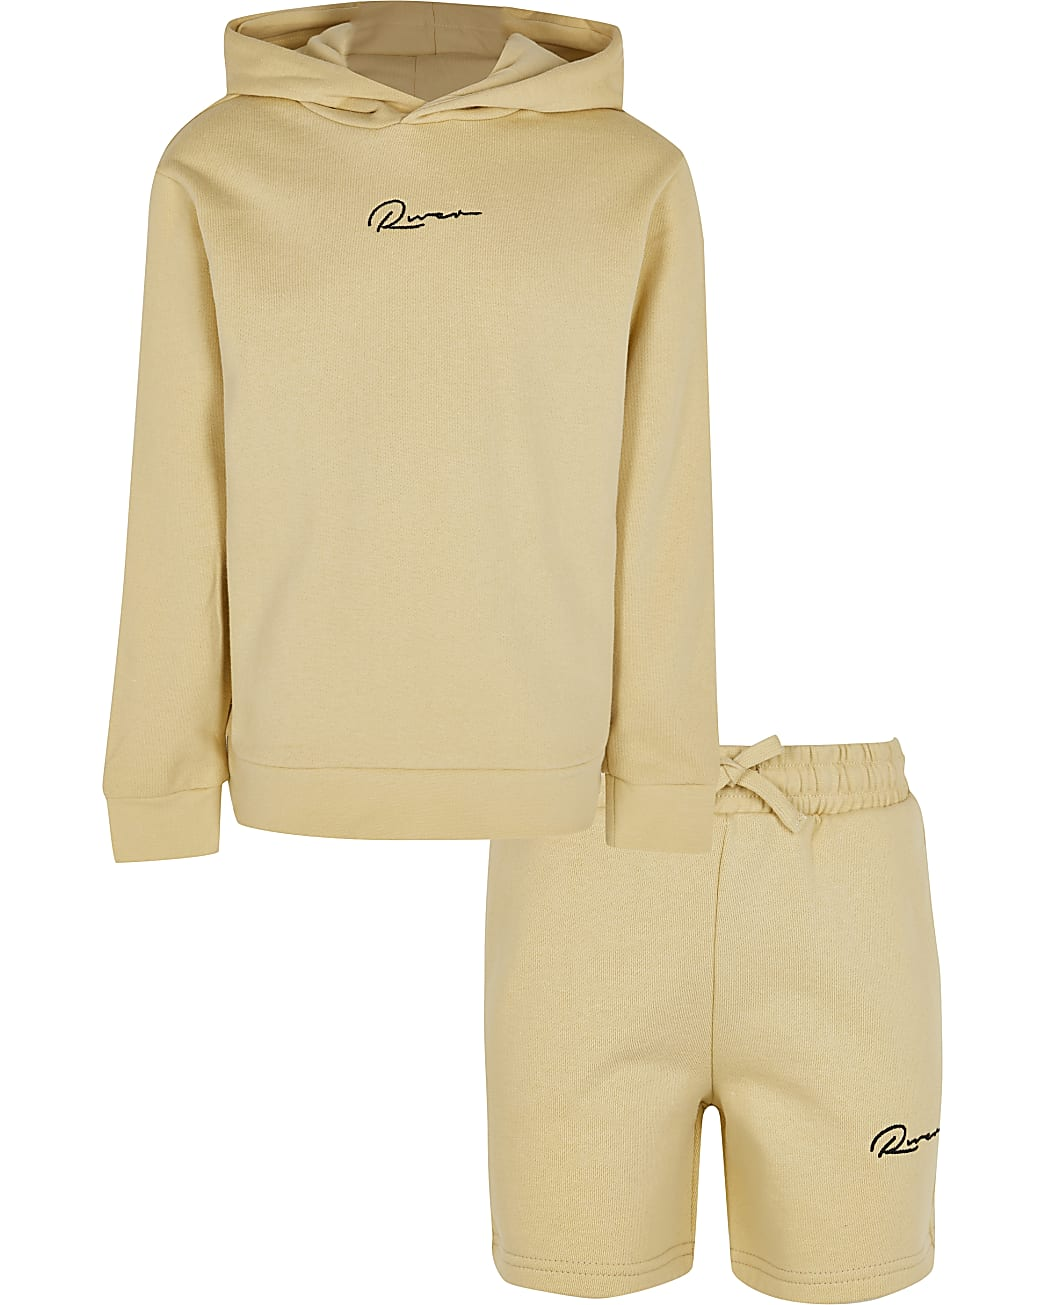 Age 13+ boys stone River hoodie outfit